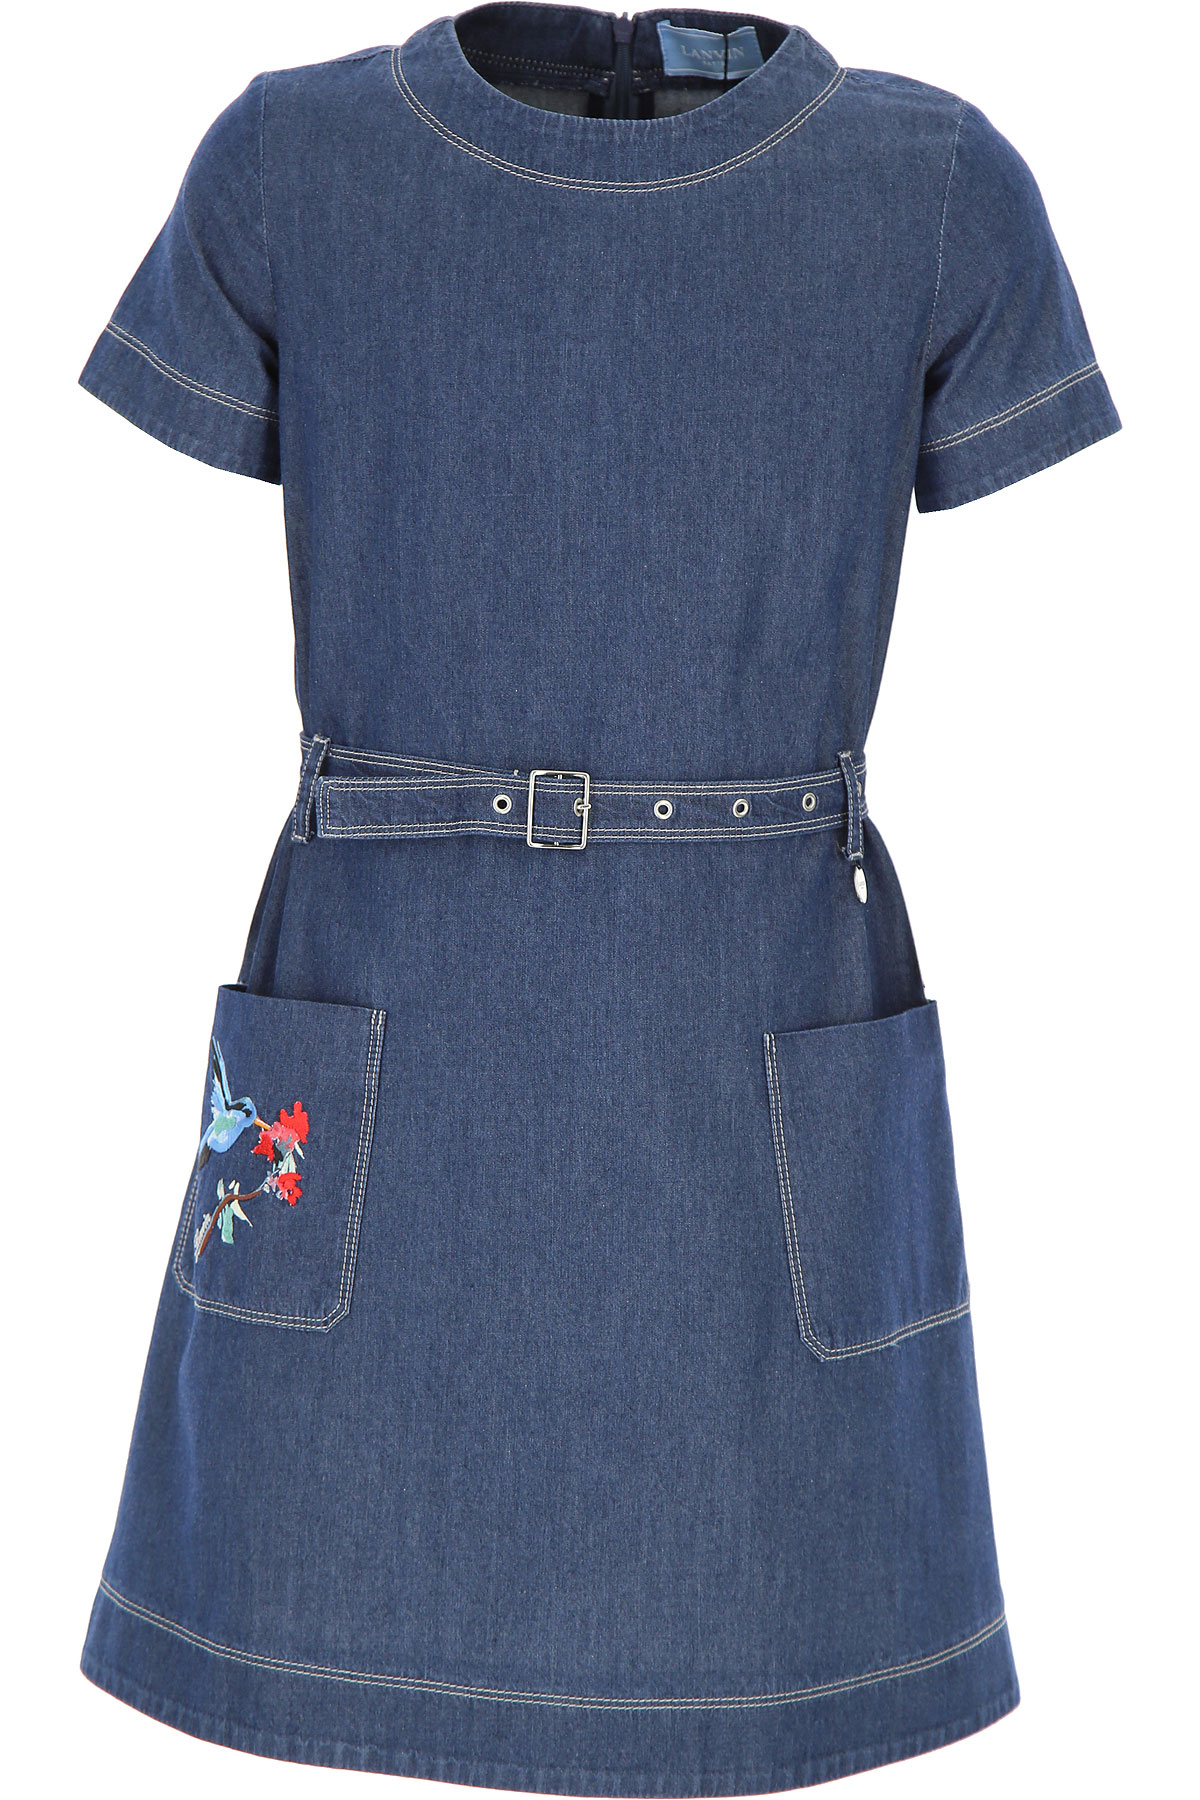 Lanvin Girls Dress On Sale in Outlet, Denim Blue, Cotton, 2019, 12Y 8Y